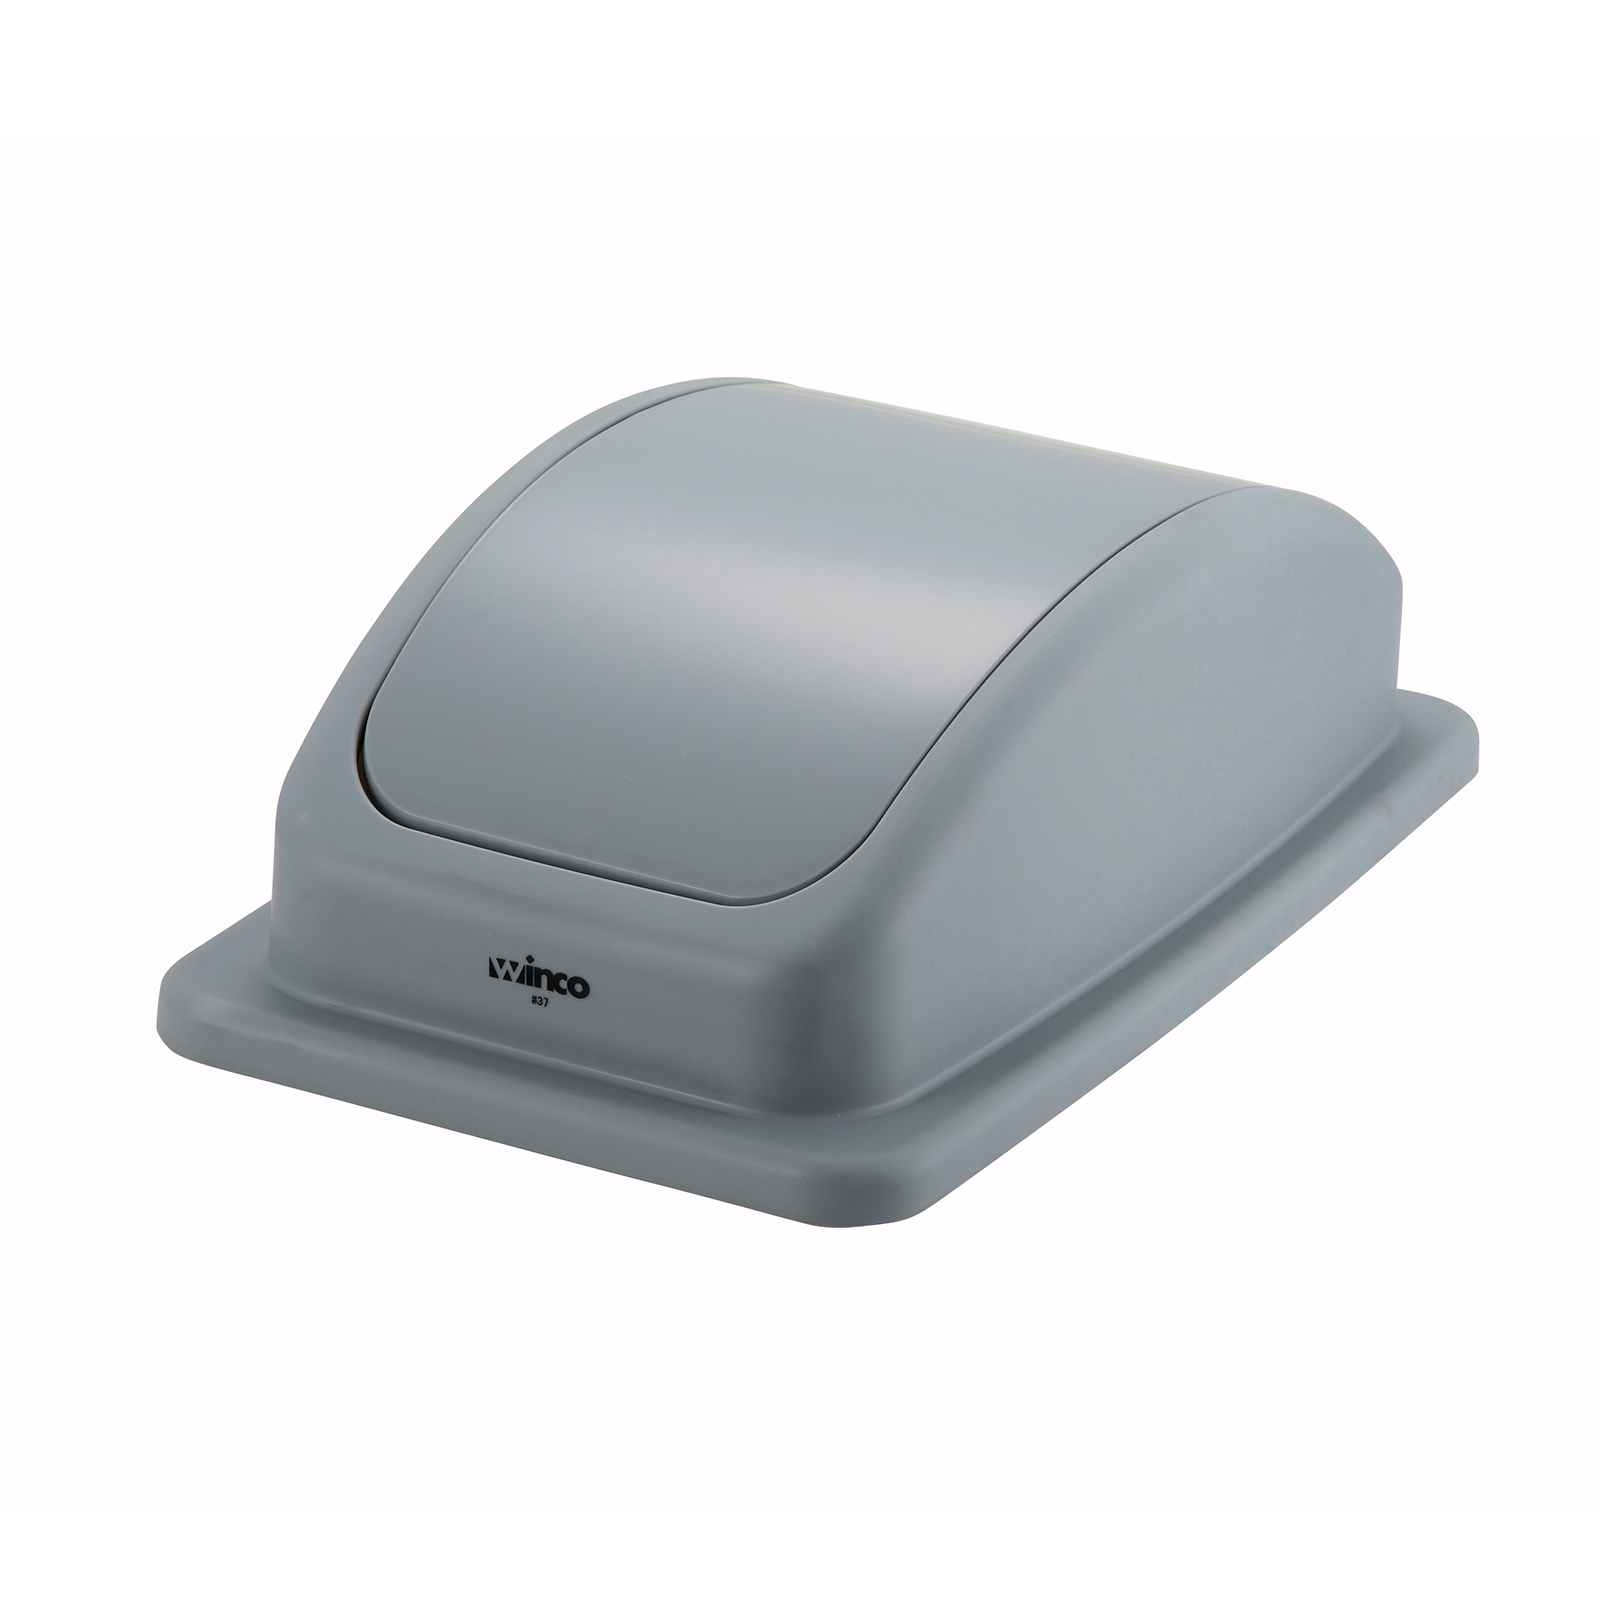 Winco PTCL-23 trash receptacle lid / top